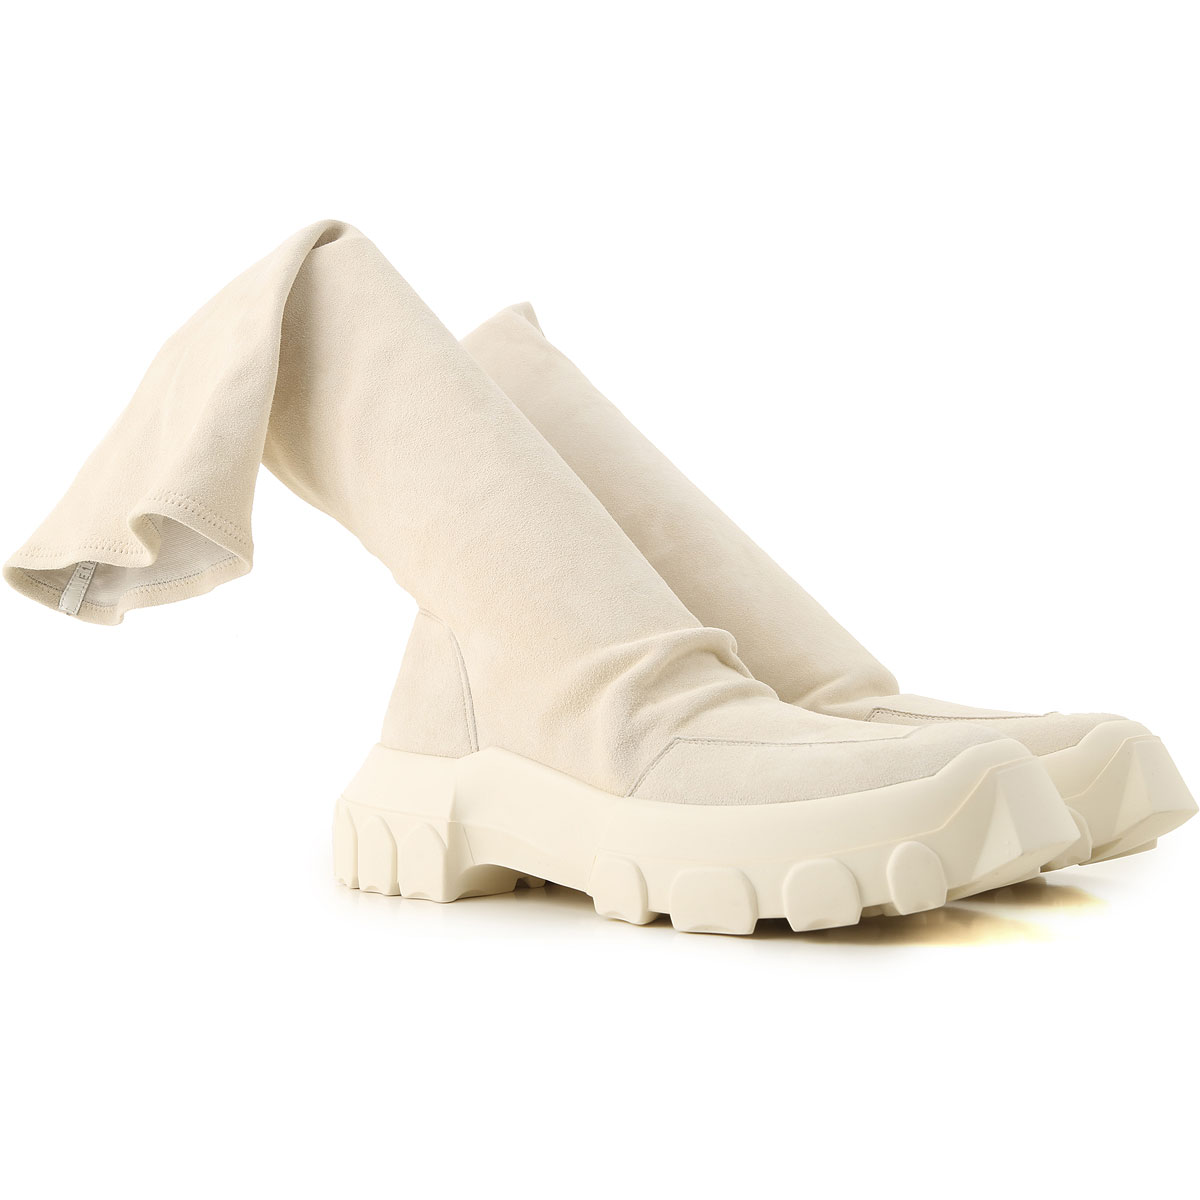 Rick Owens Boots for Men, Booties On Sale in Outlet, Milk, Suede leather, 2019, 7.5 9